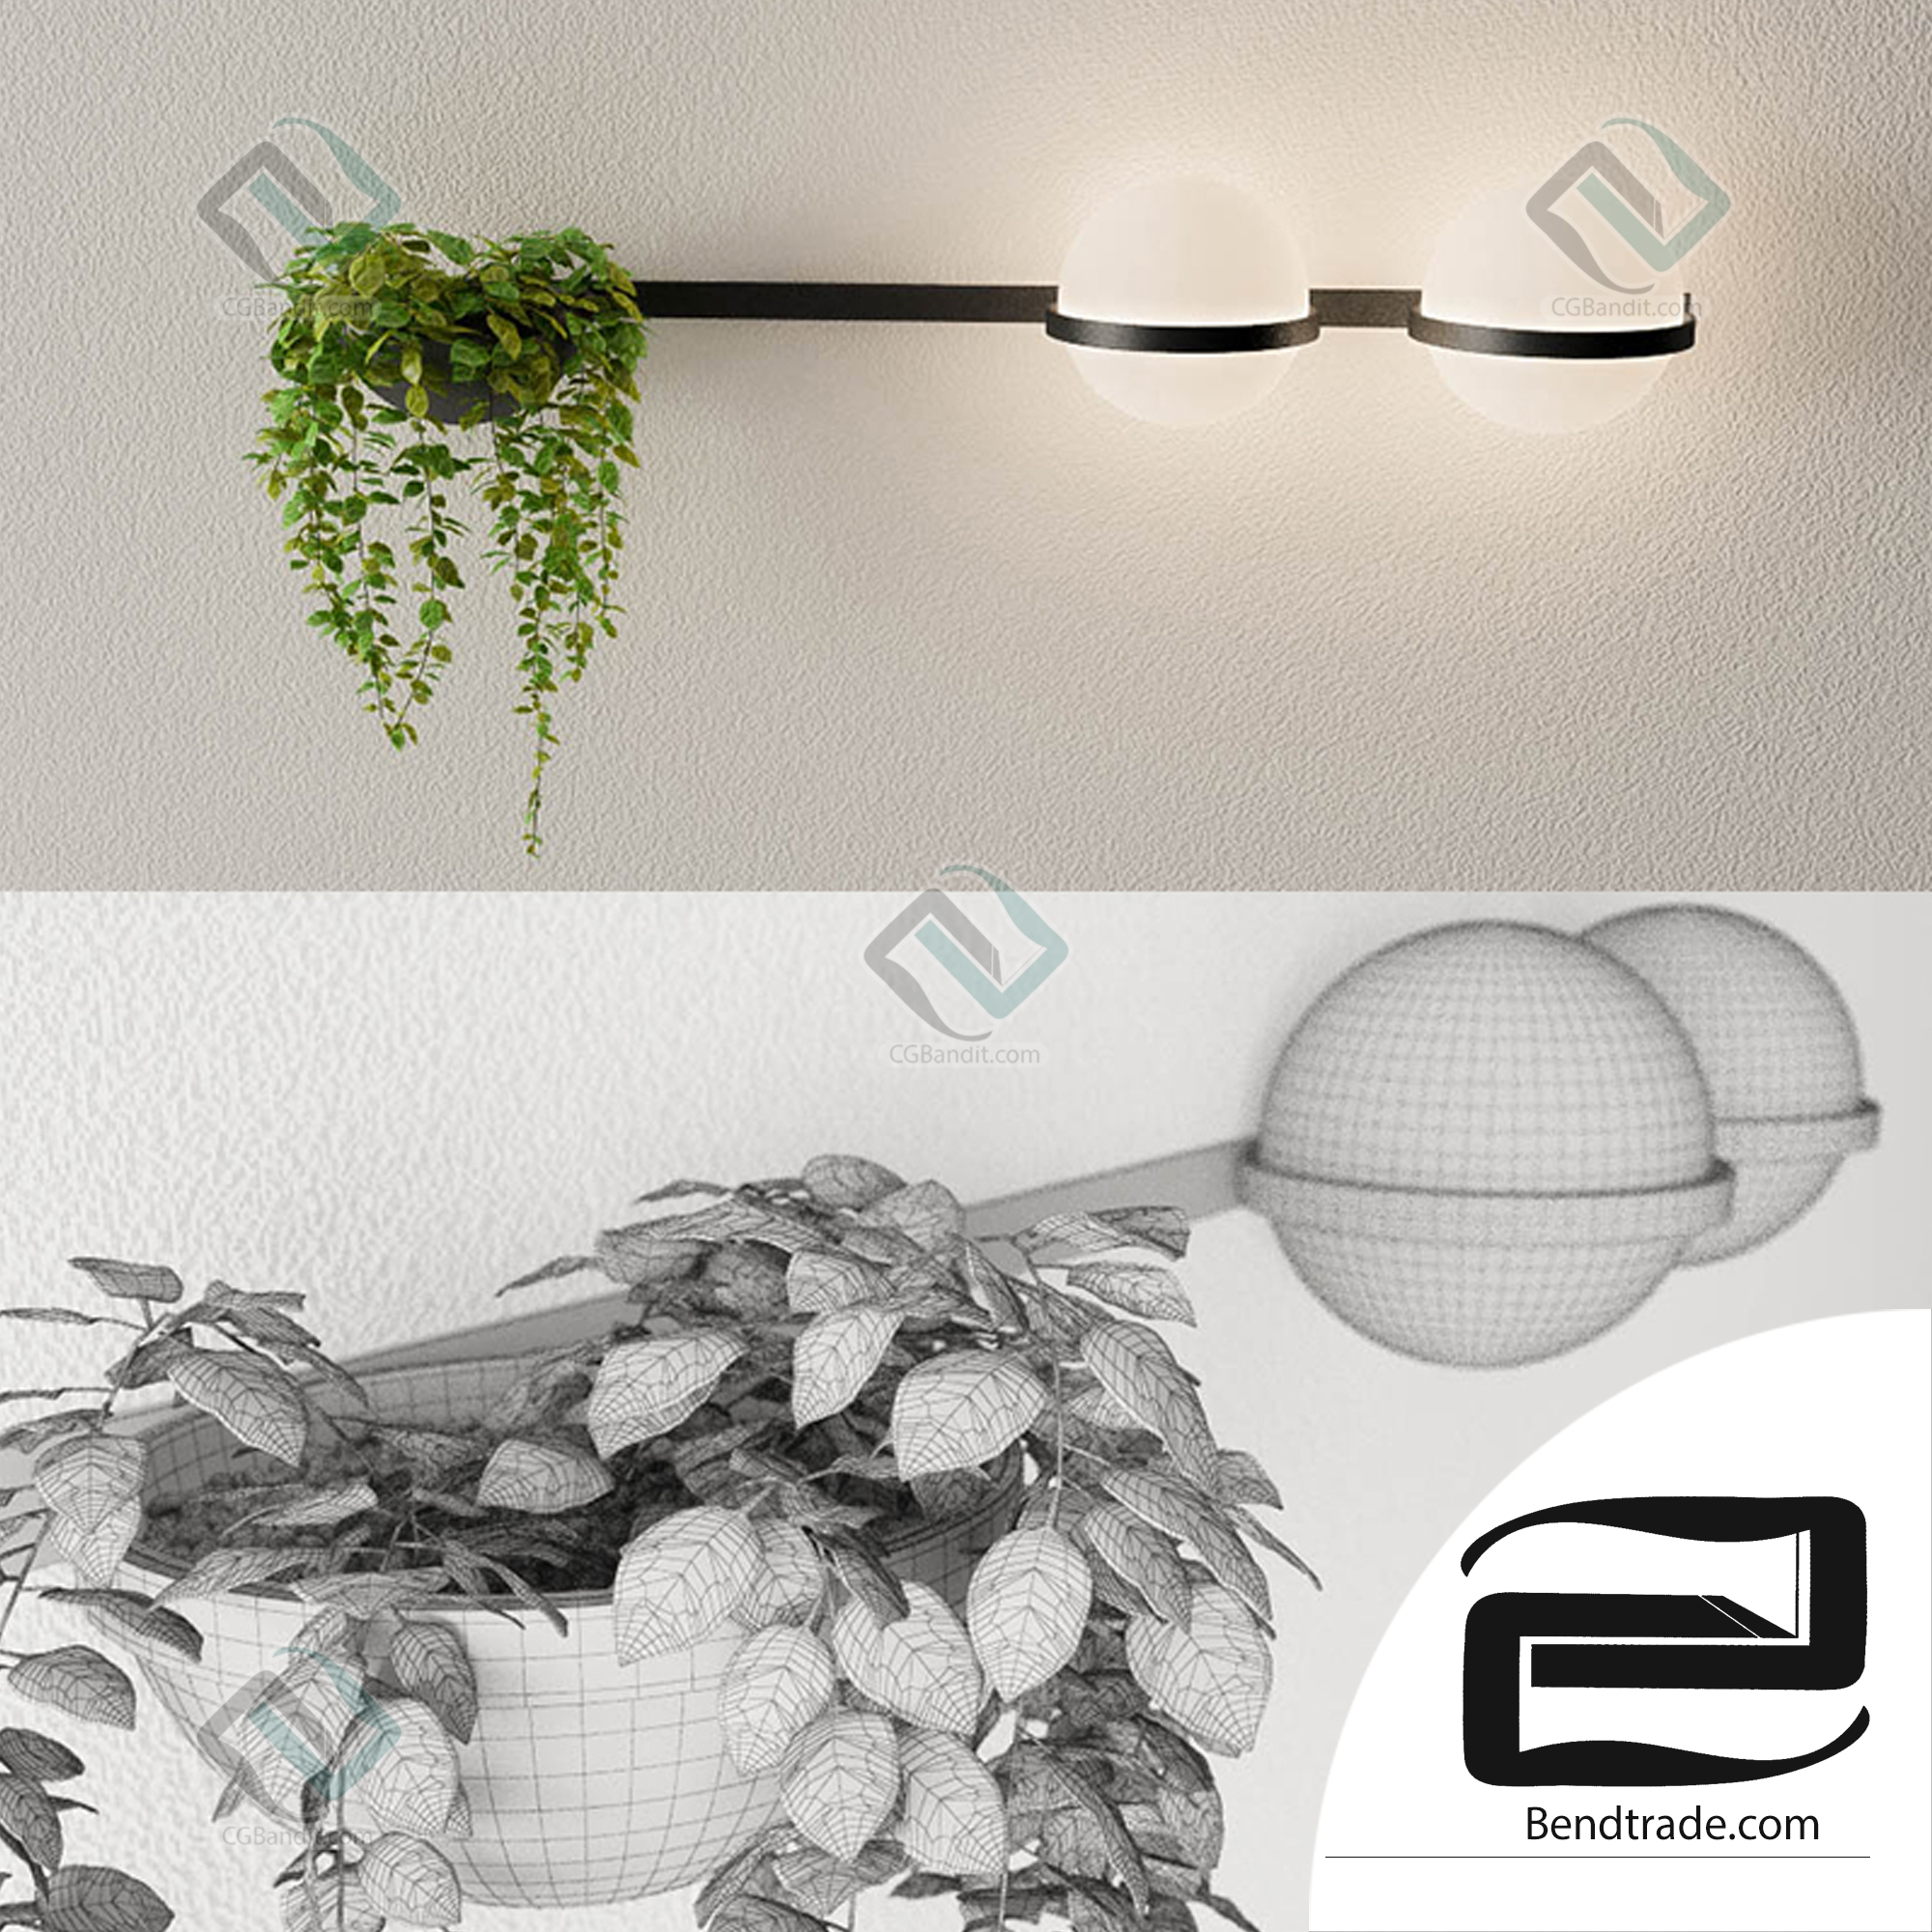 Lighting PALMA Vibia pendant lamp with plant